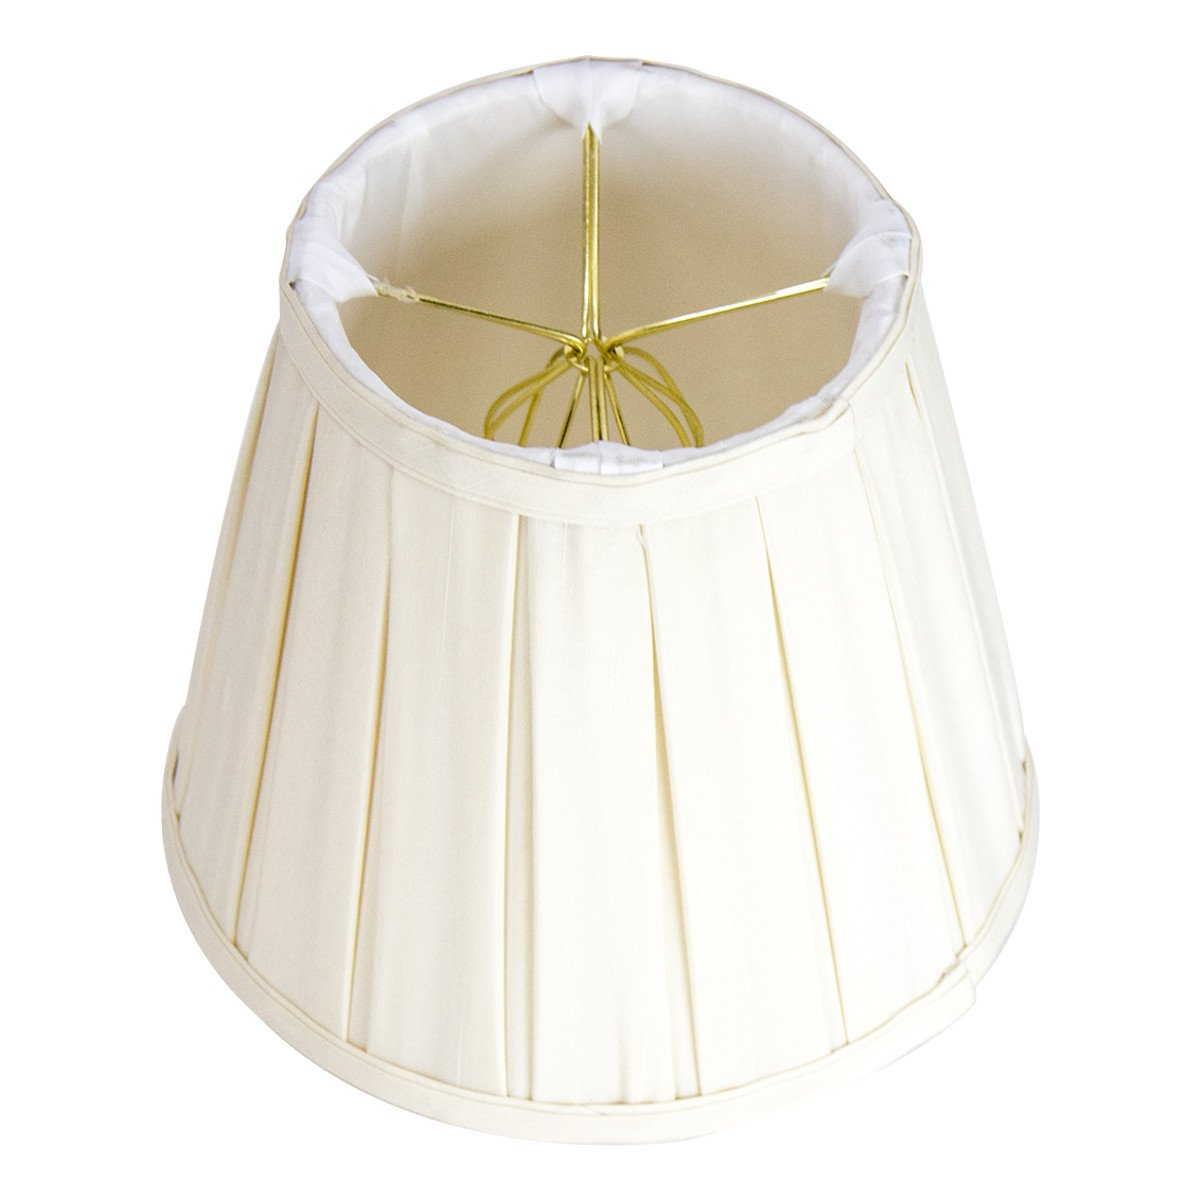 5x8x7 Empire Box Pleat Eggshell Lampshade with Shantung fabric and White Liner